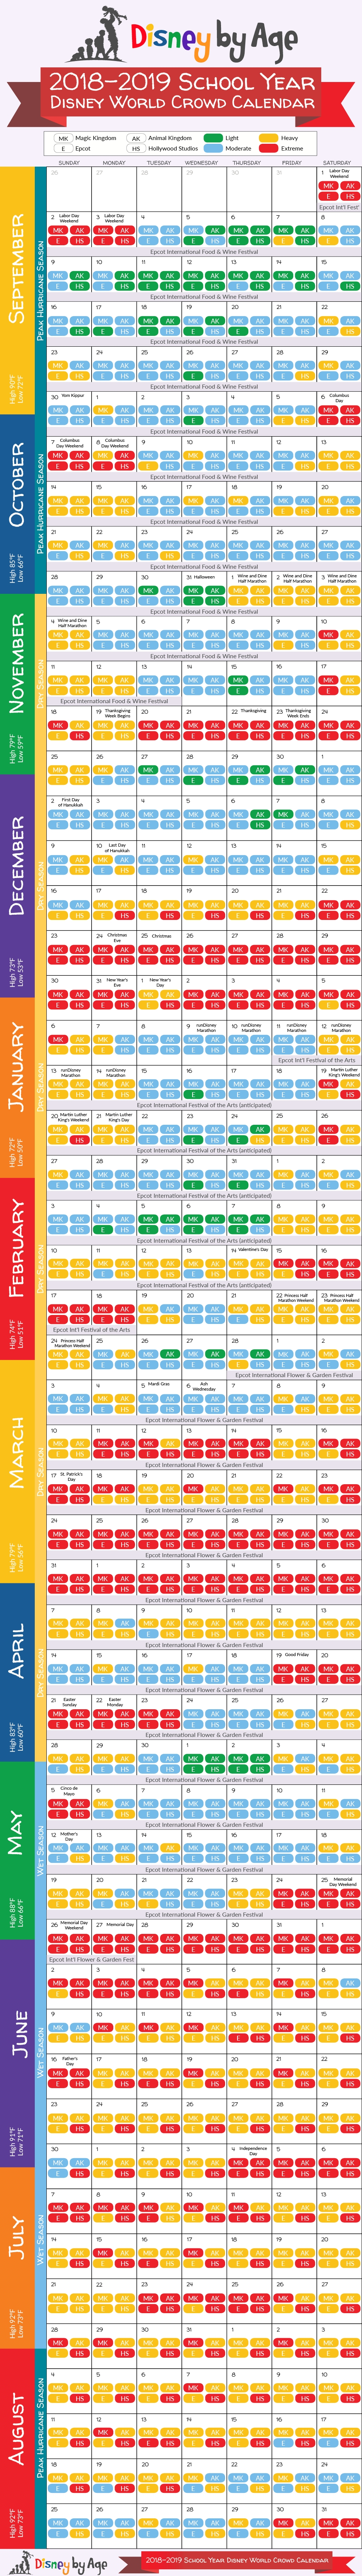 Disney World Crowd Calendar 2018 And 2019-Disney World January 2020 Crowd Calendar